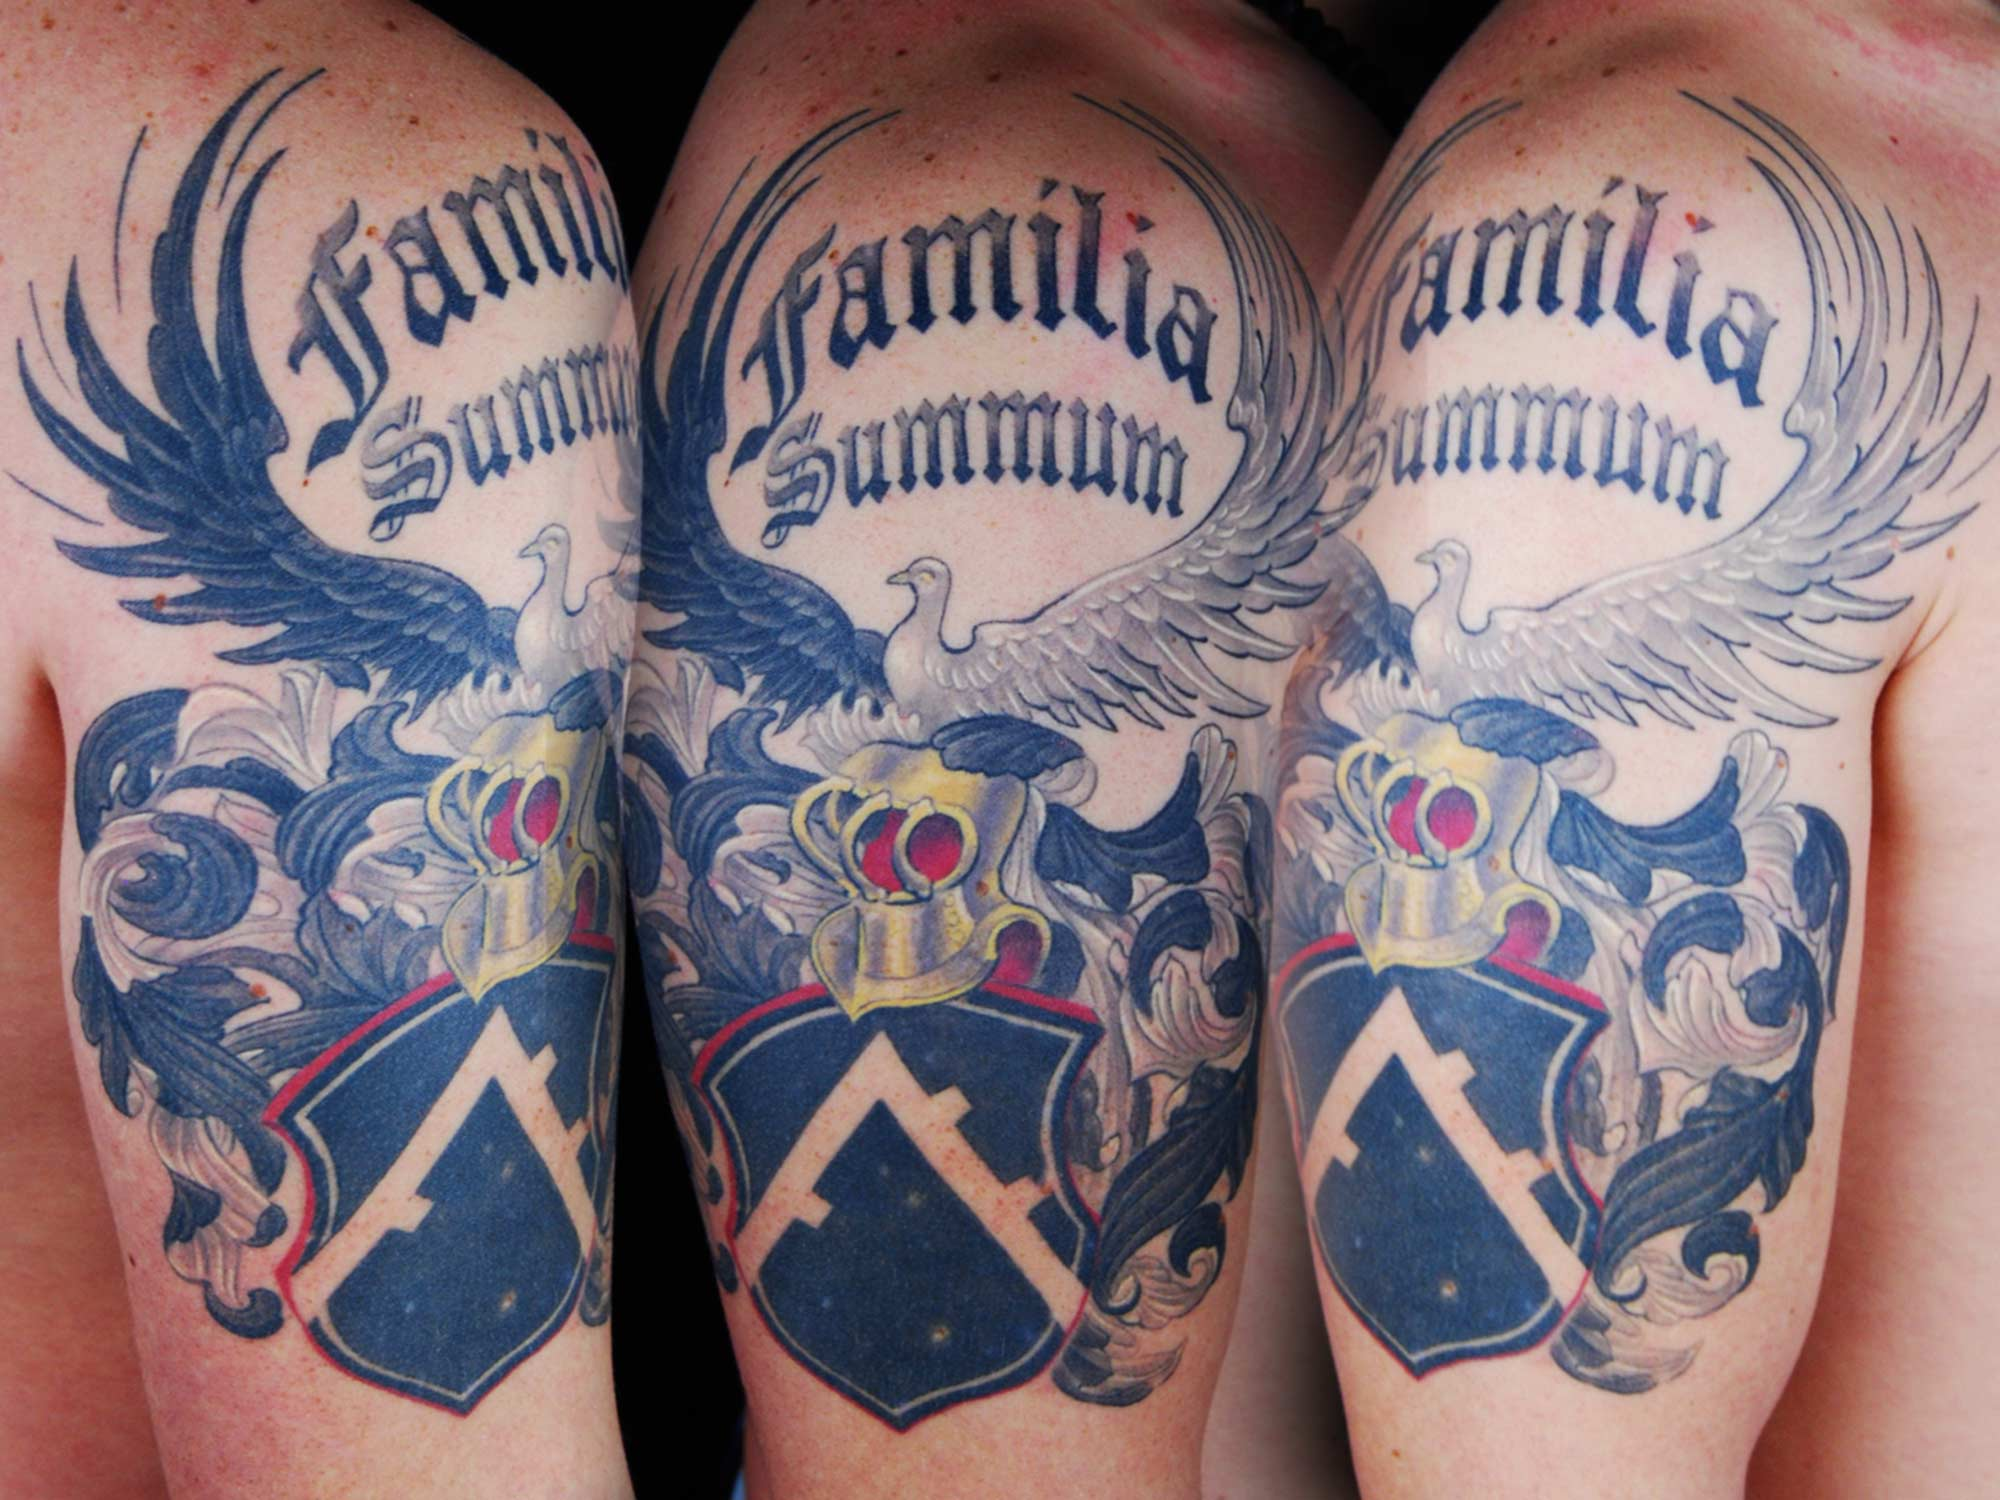 Familia-Summum Tattoo Wappen Hits for Life Shit for Life Tattoo it for Life Tattoo